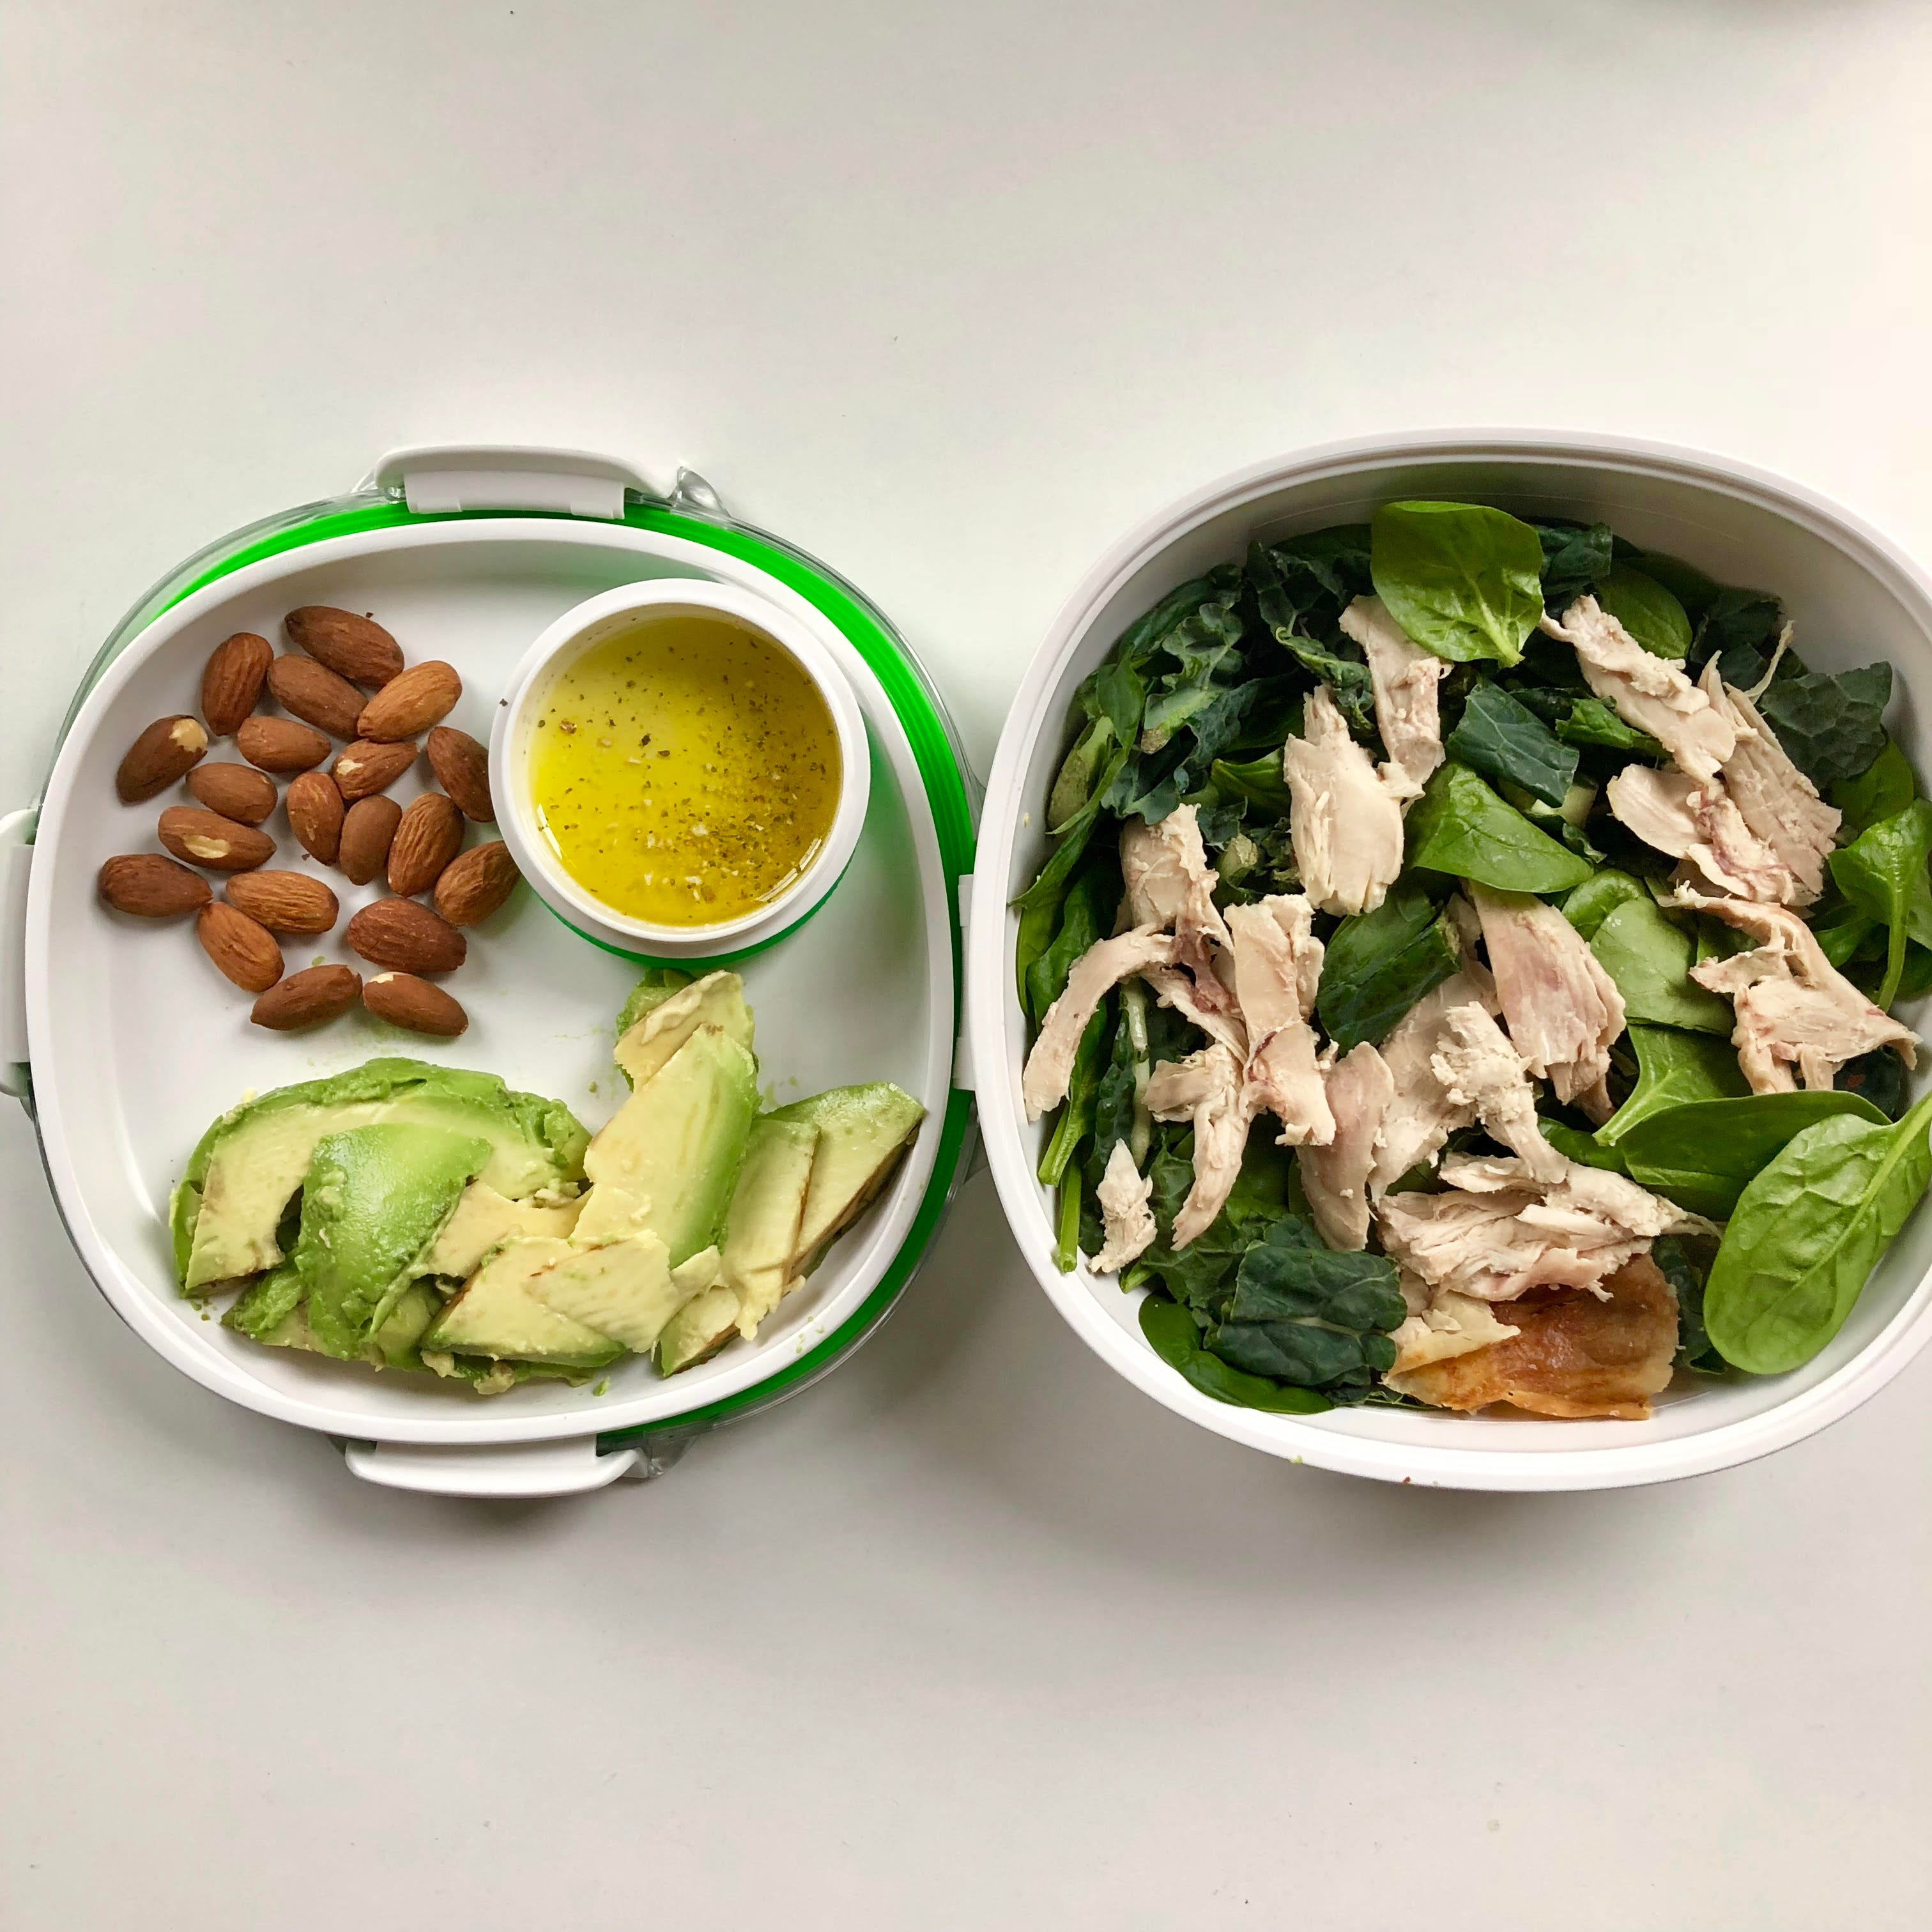 Best Tupperware Containers For Salads Review Bring Your Own Lunch Set